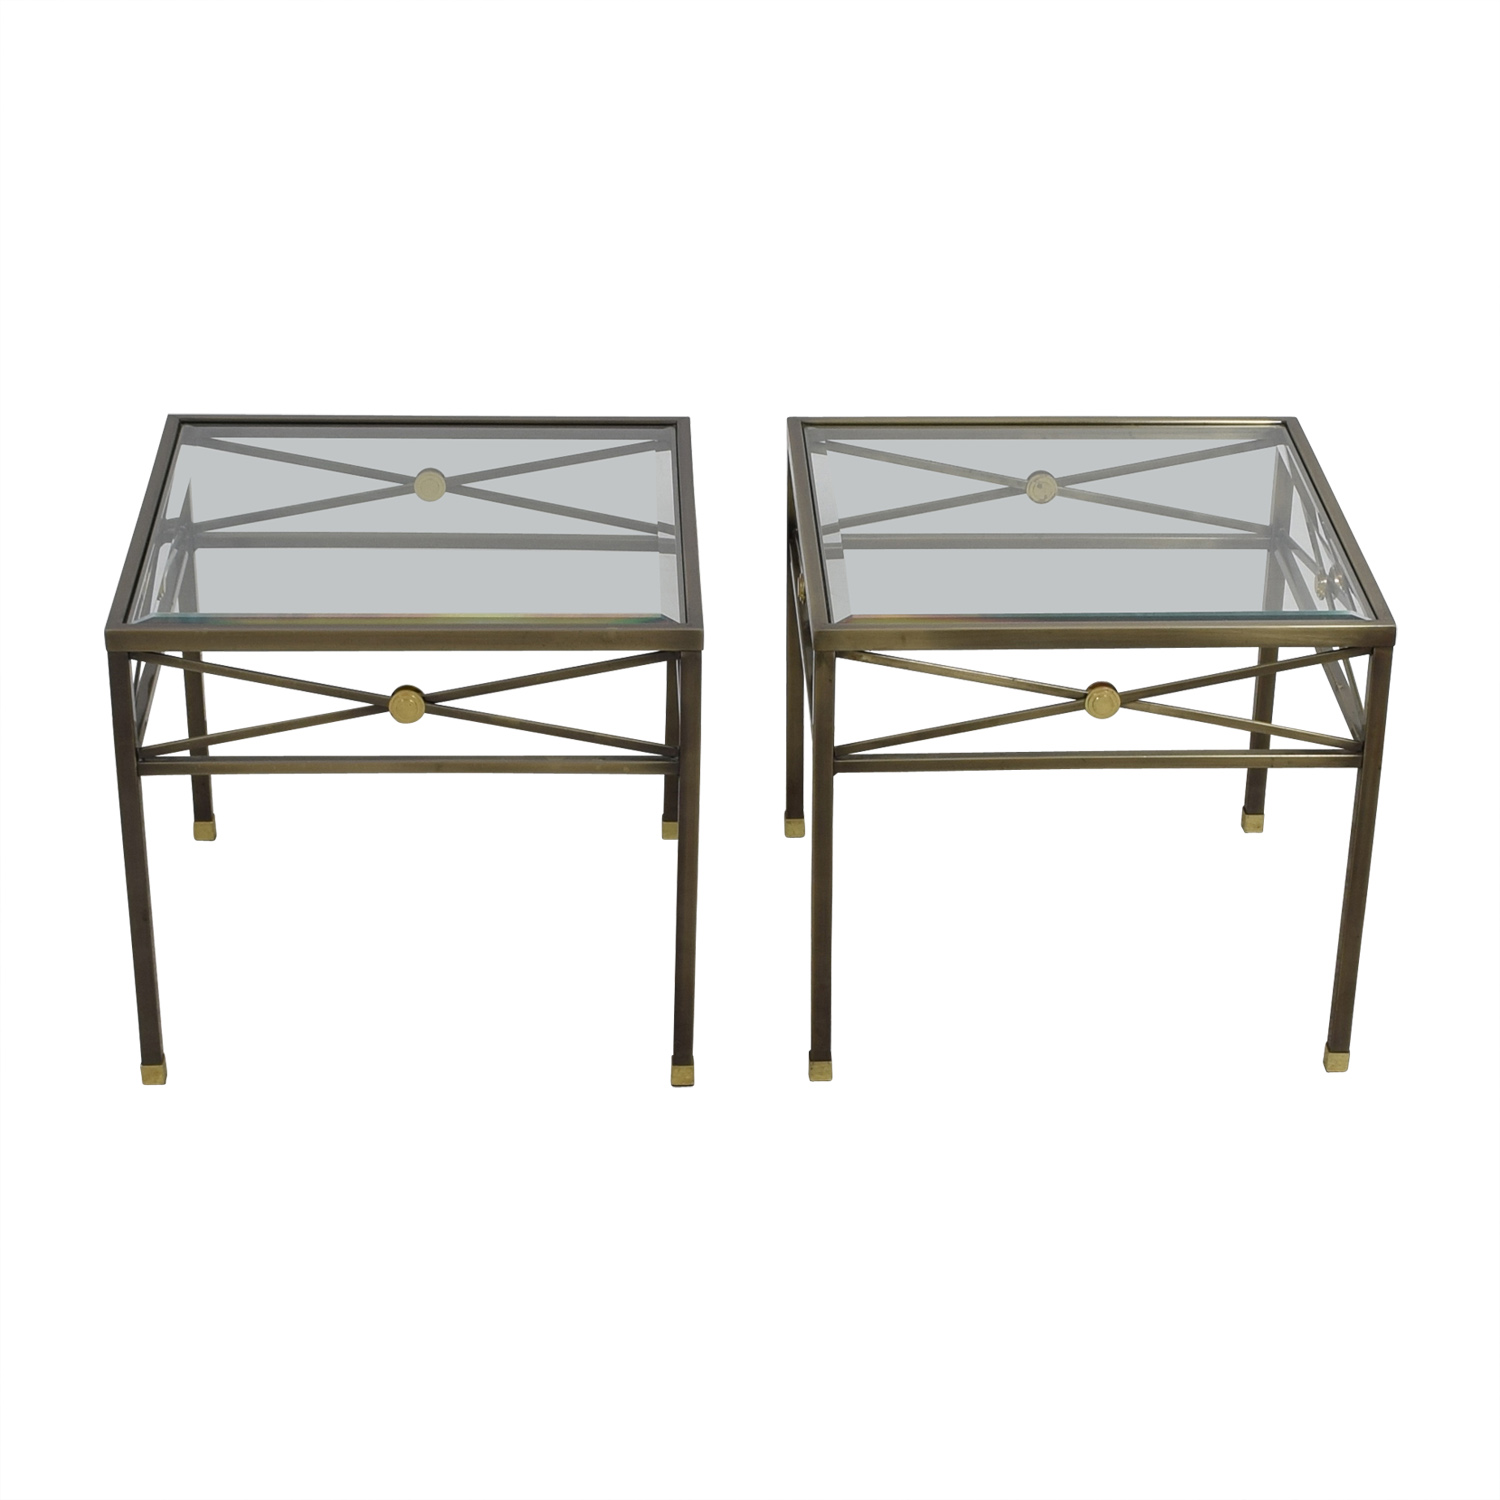 Macys Macys Glass and Brass Side Tables dimensions